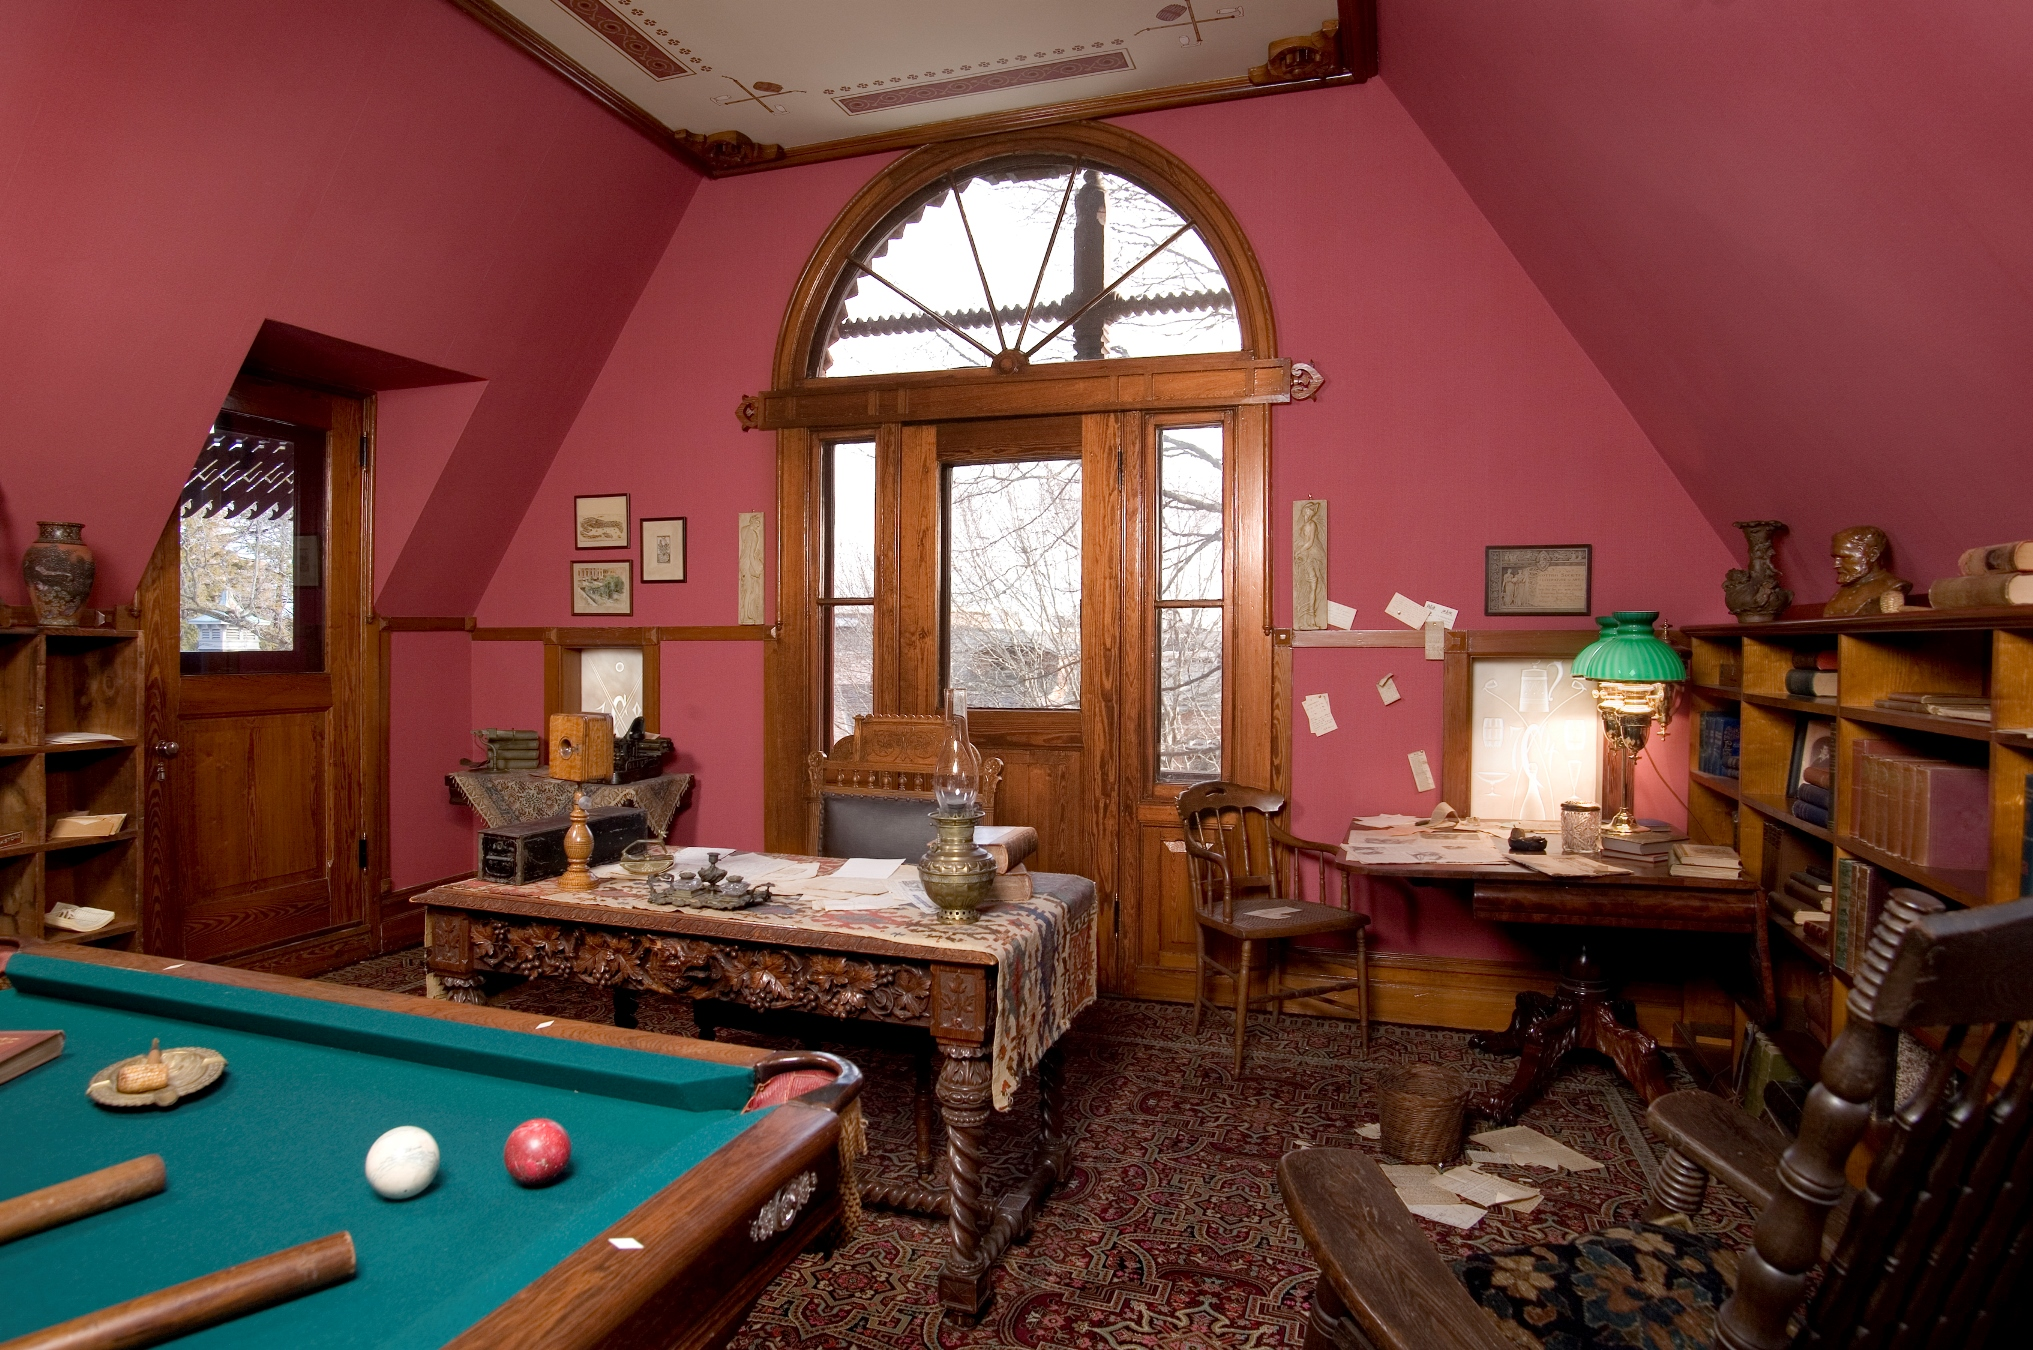 The Billiard Room: Served as Twain's office and study, where he wrote some of his most notable works